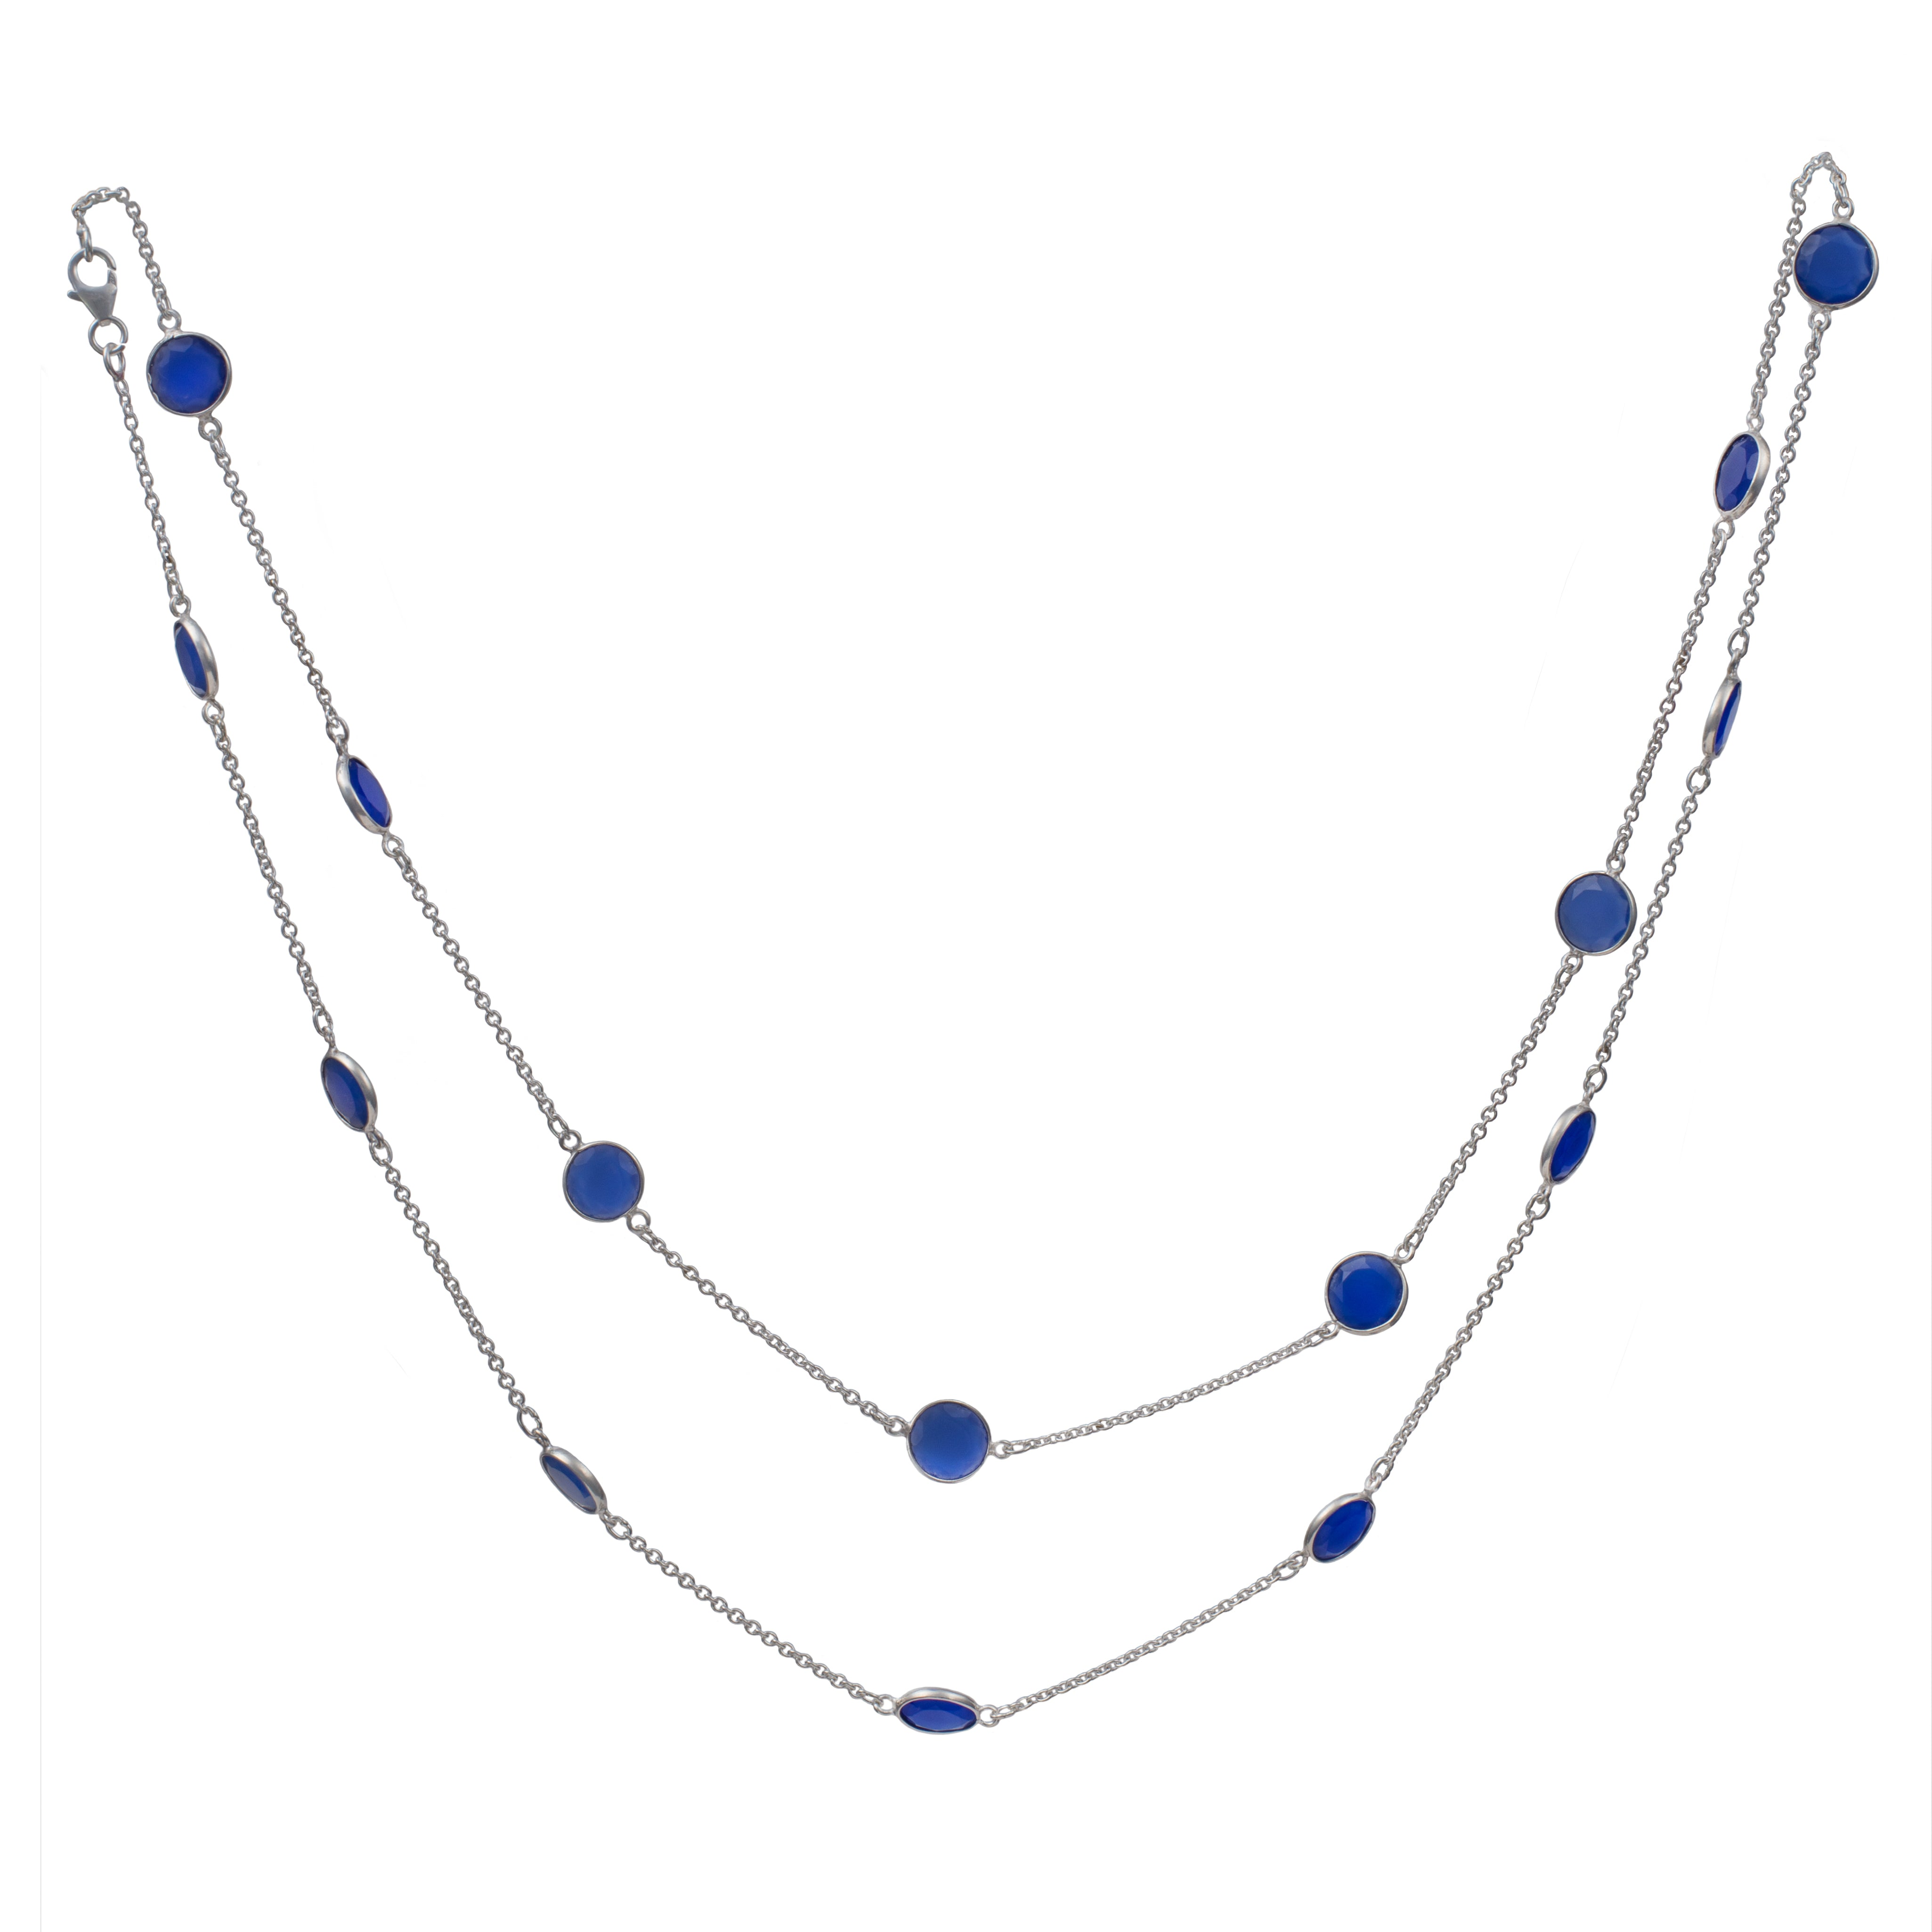 Blue Chalcedony Gemstone Necklace in Sterling Silver